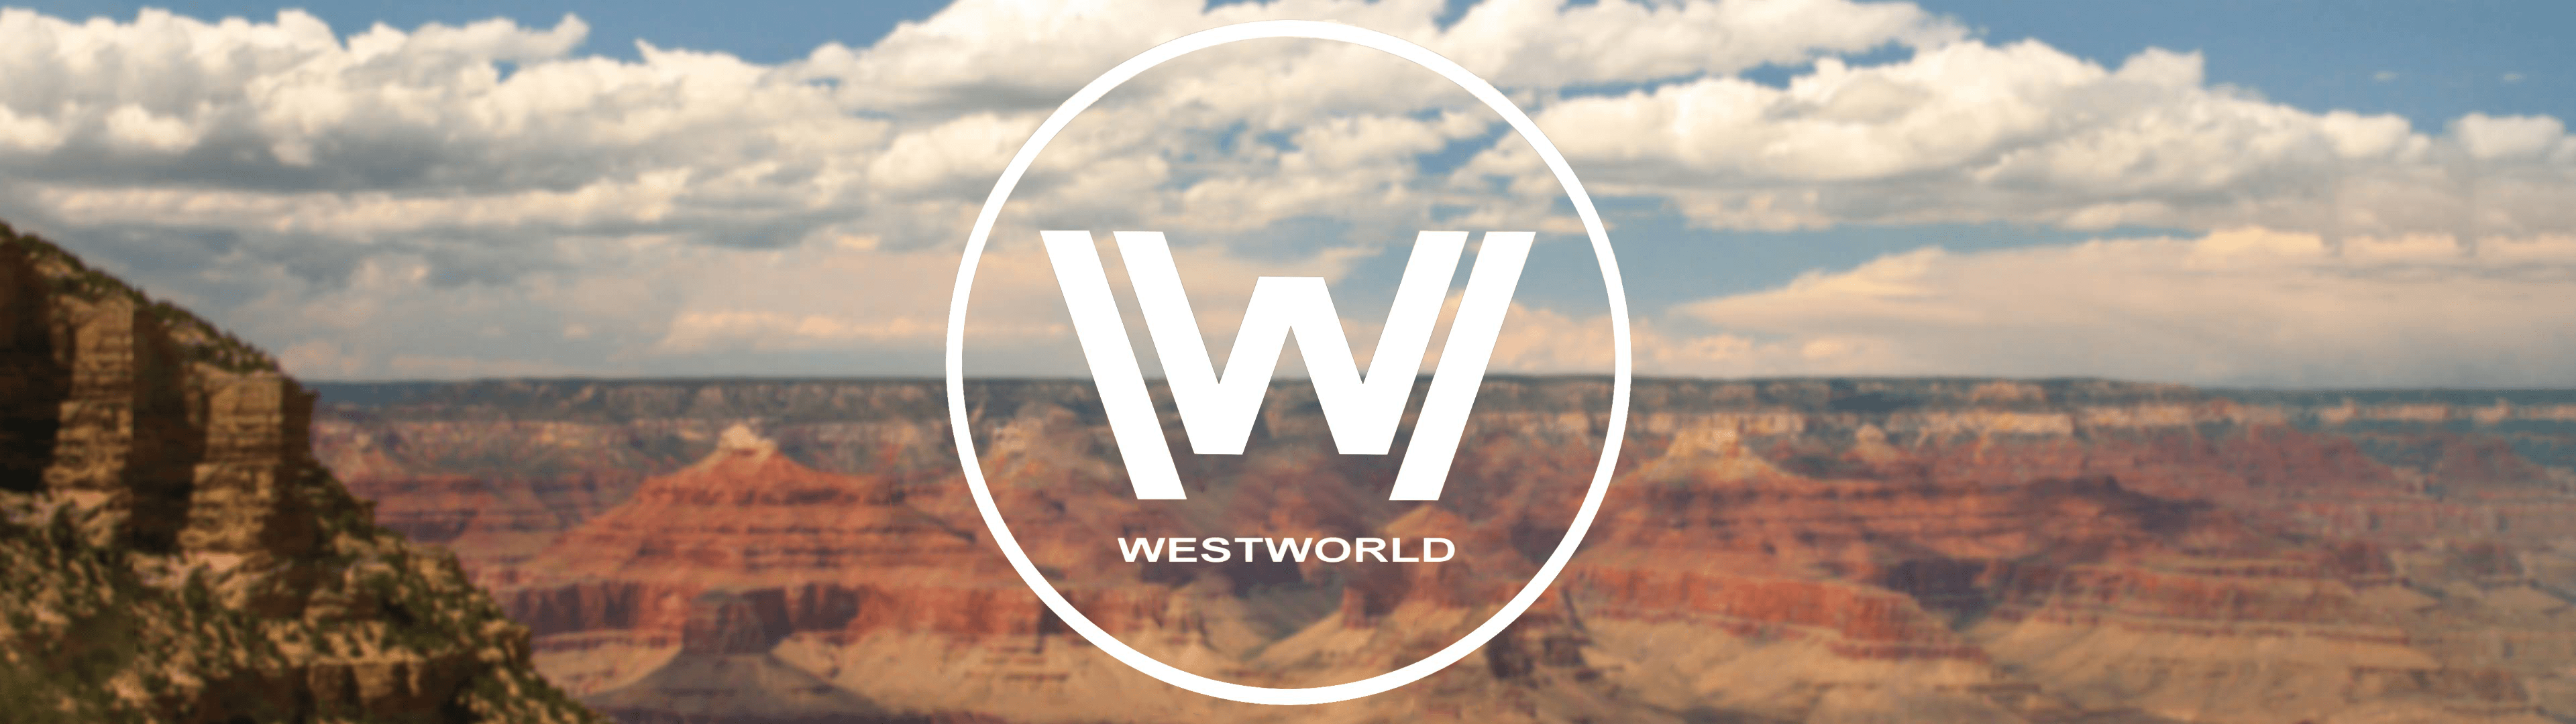 Westworld Wallpapers 3840x1080